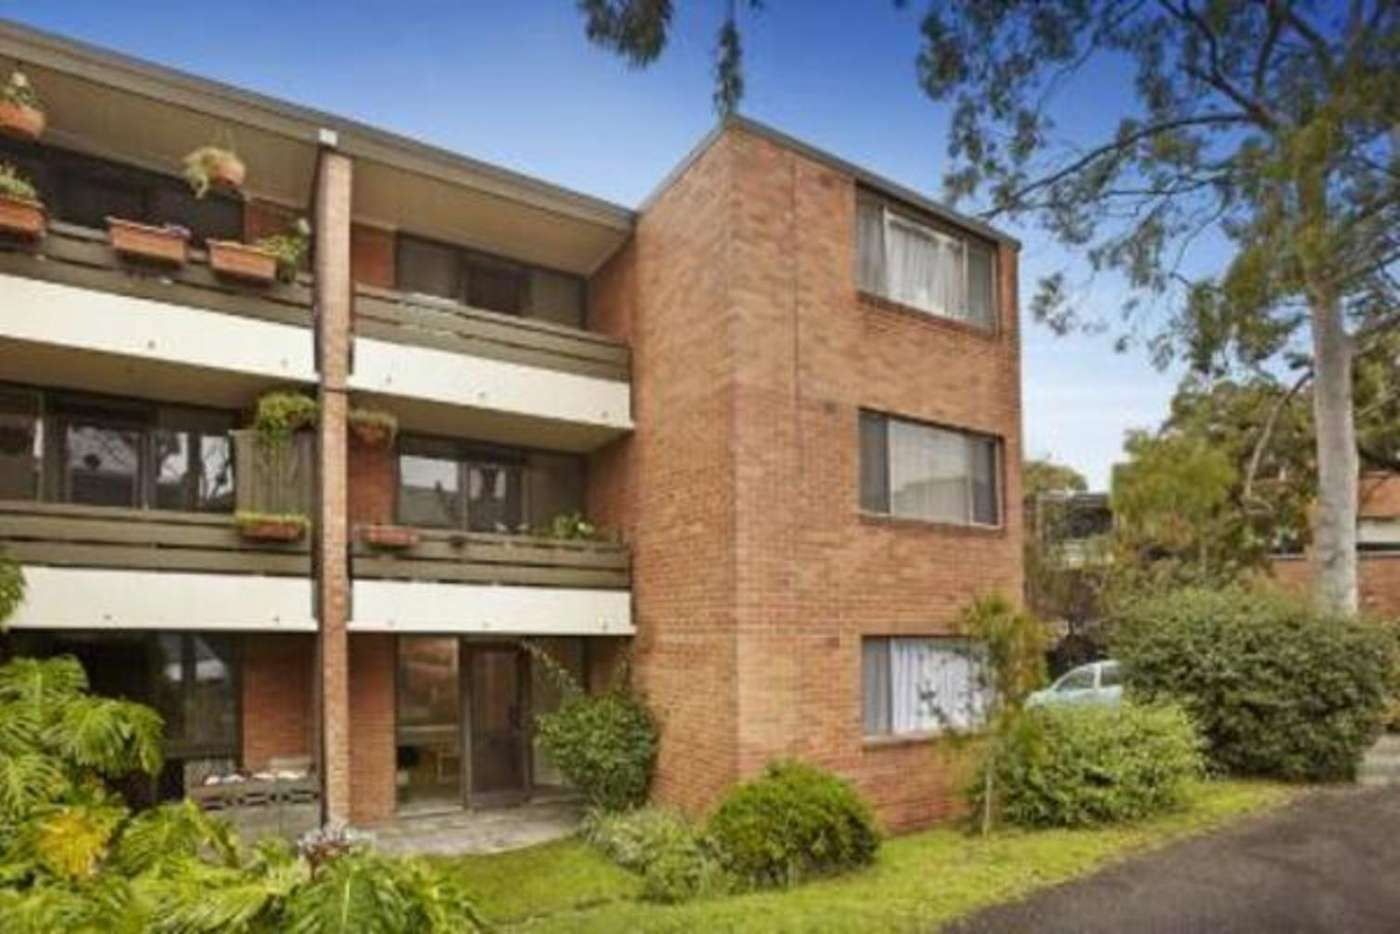 Main view of Homely apartment listing, 7/19 Wood Street, North Melbourne VIC 3051